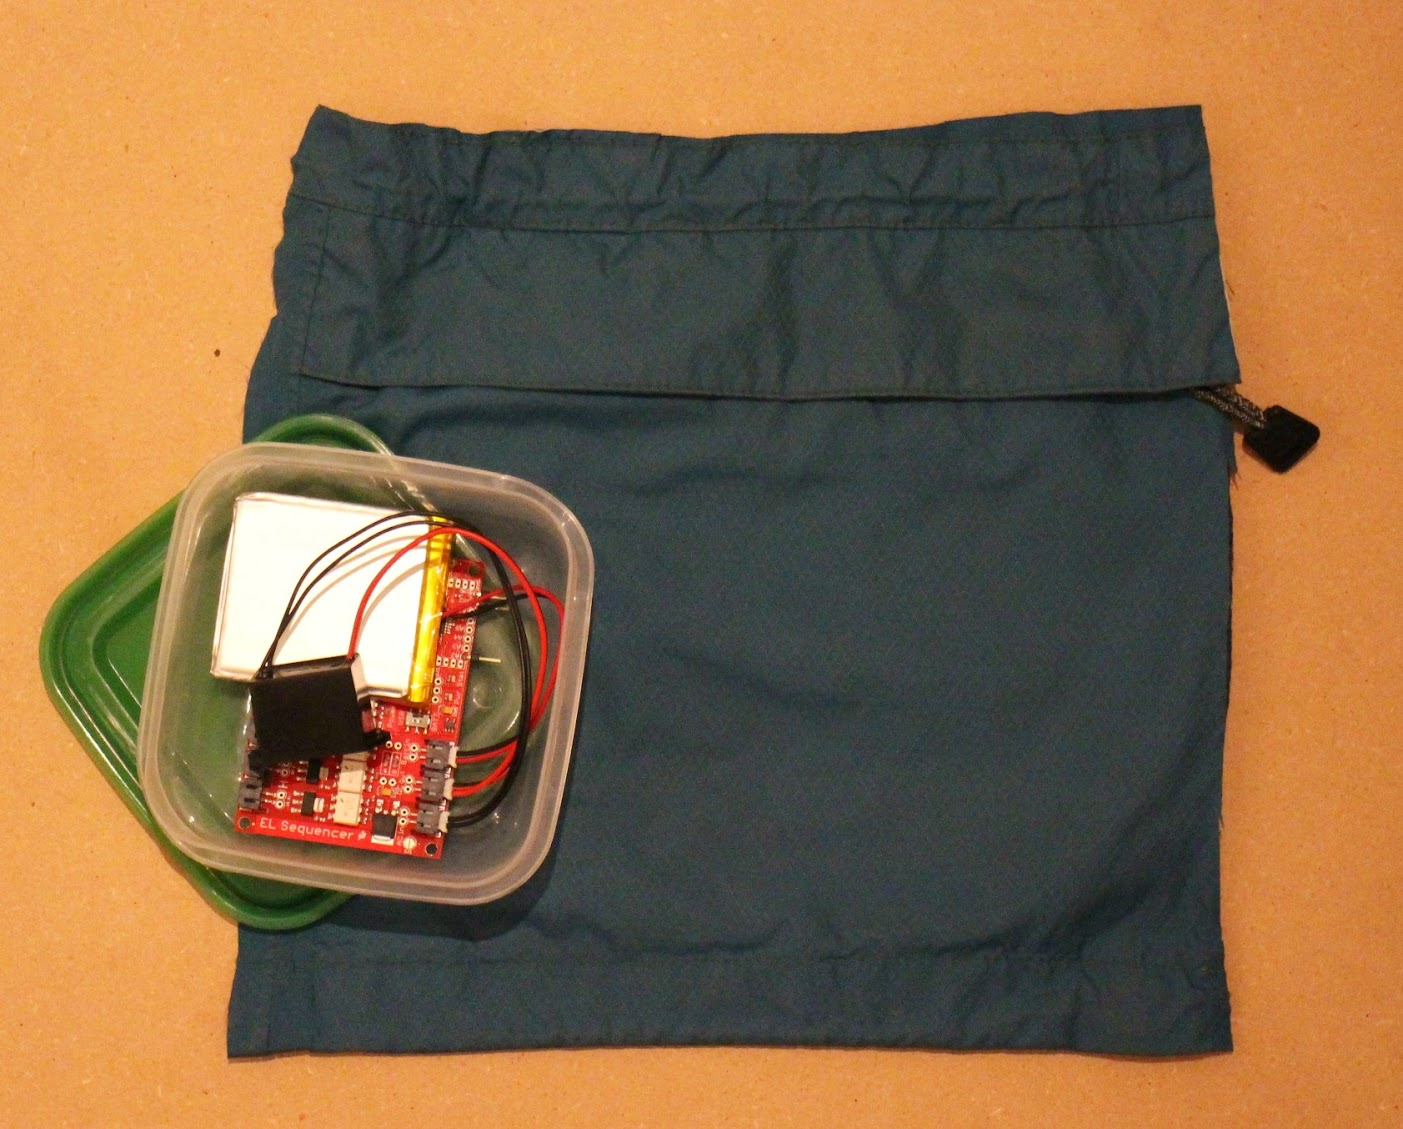 EL Wire Light-Up Dog Harness - learn.sparkfun.com